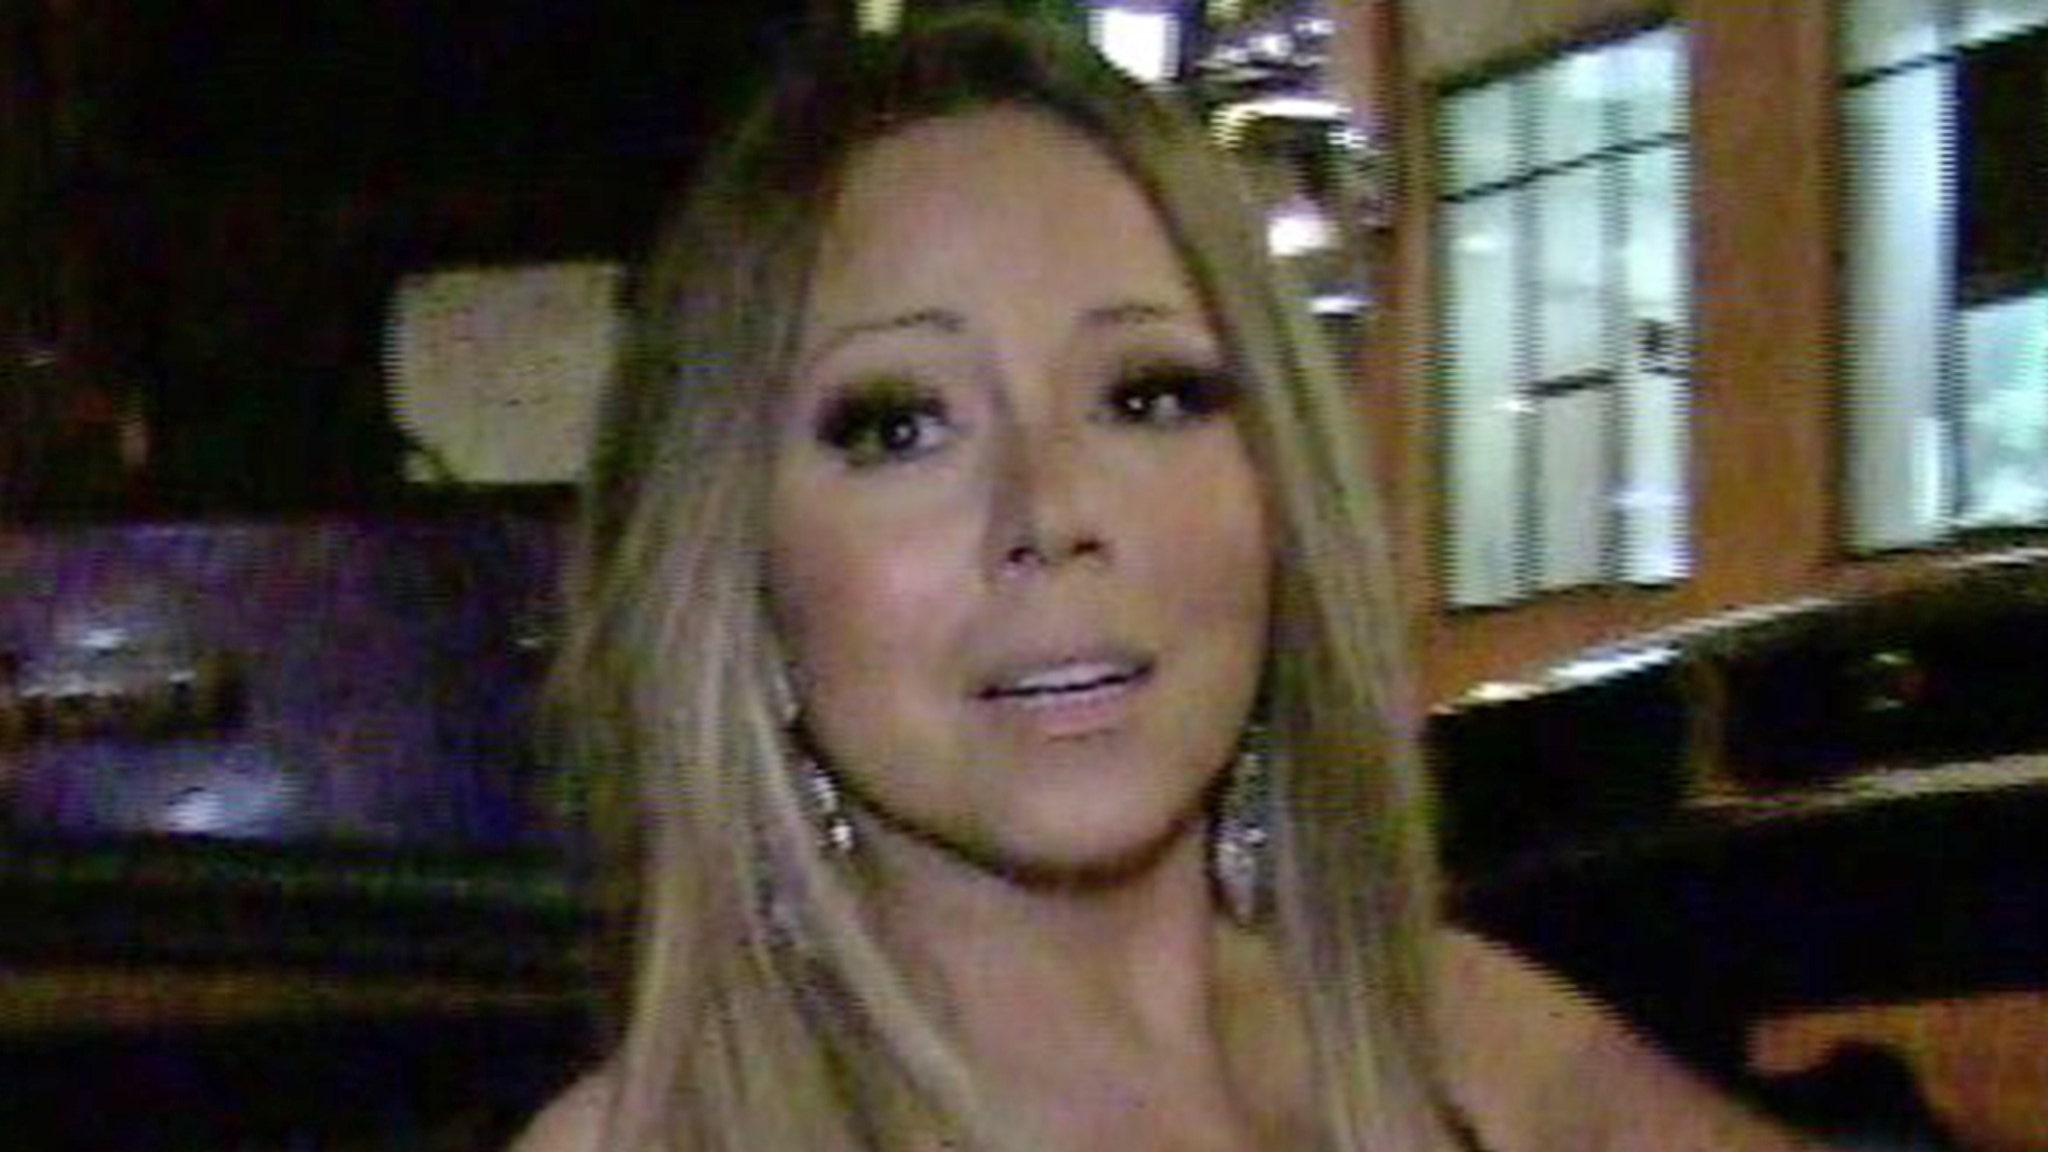 Mariah Carey's Estranged Brother Sues Her for Defamation - TMZ